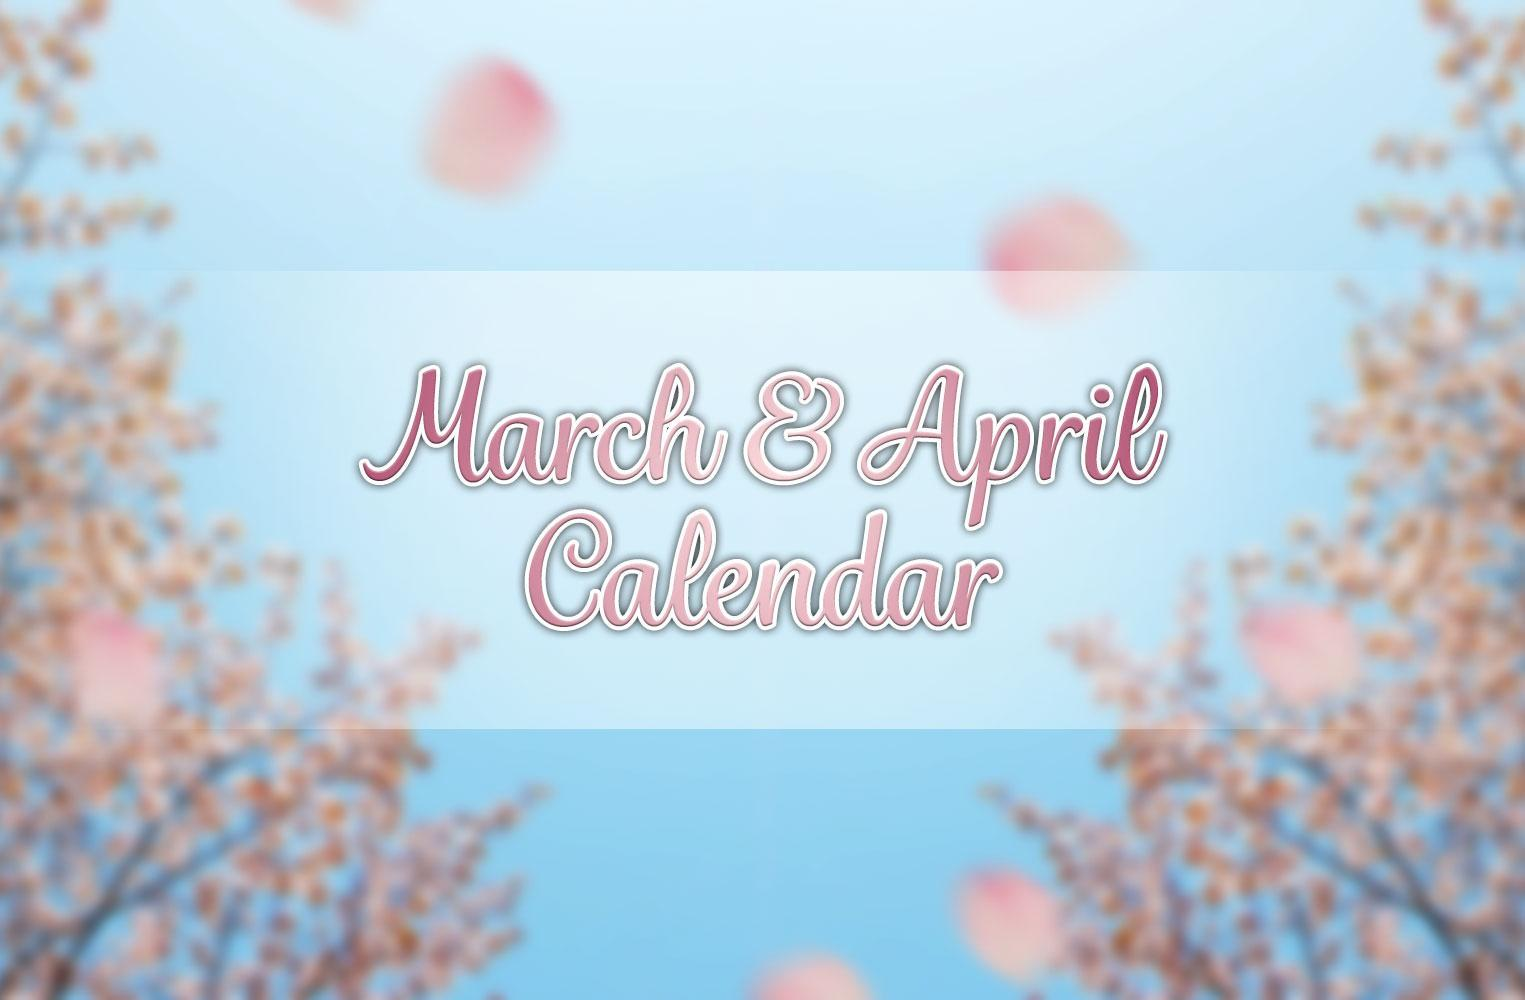 Important Dates to Remember in March & April 2019